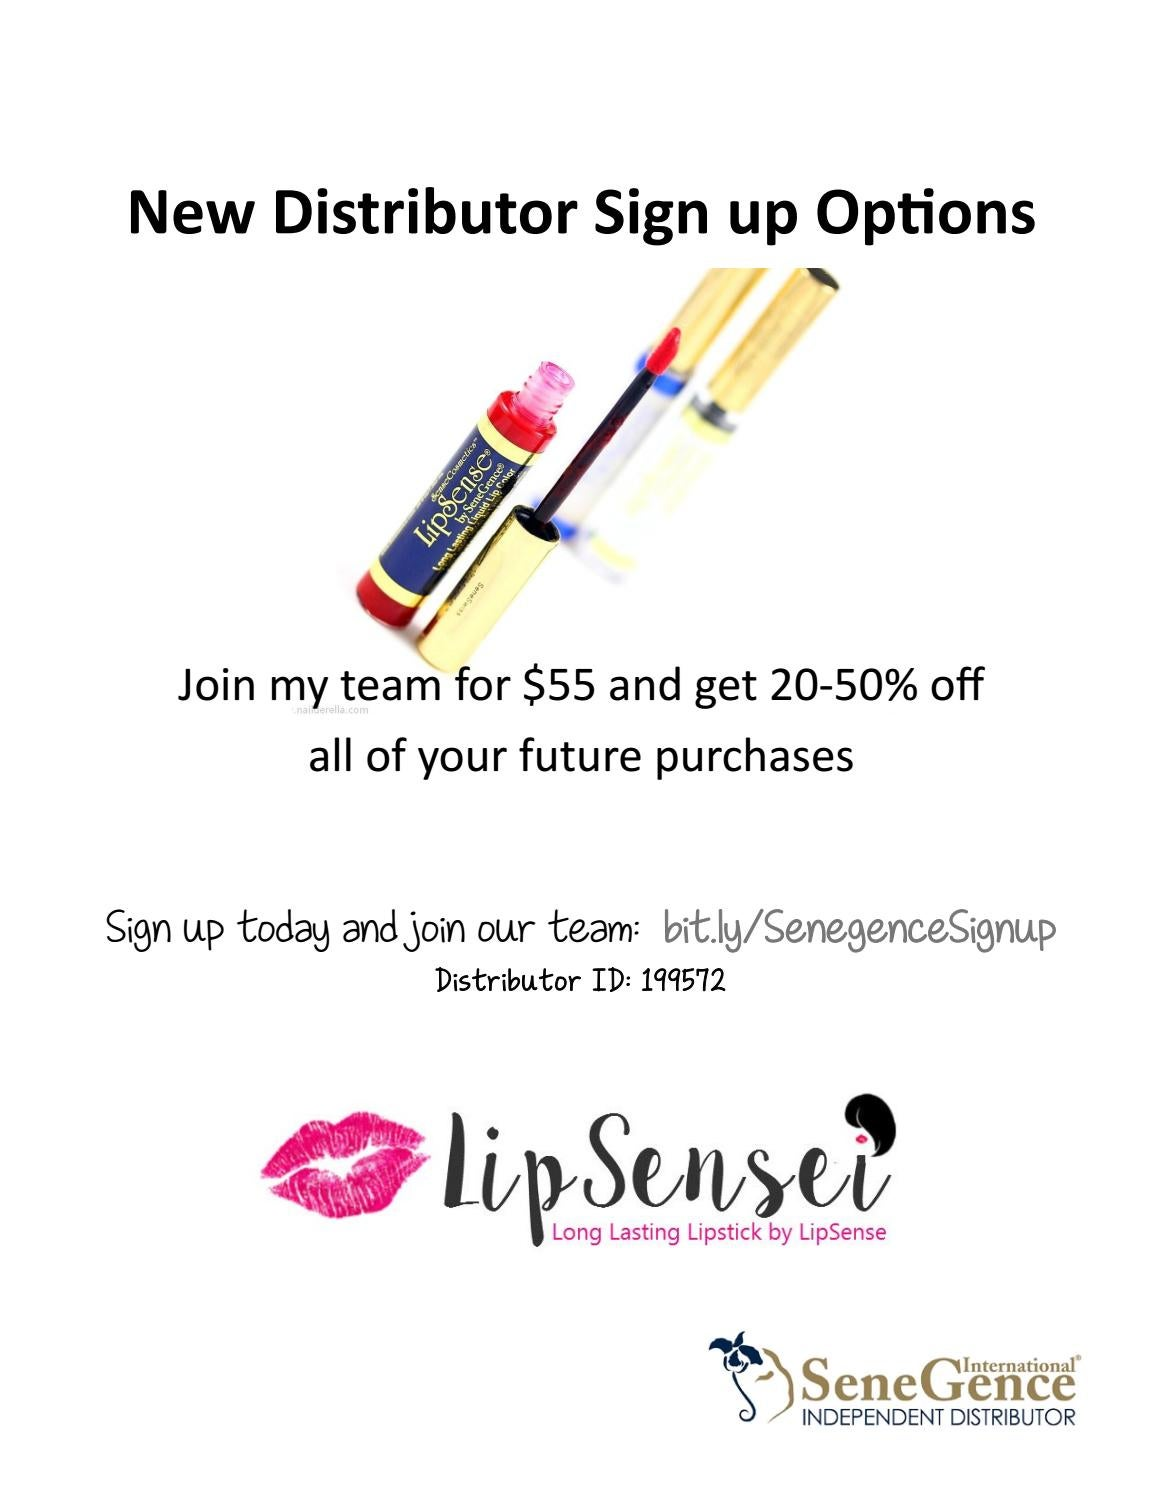 New Option 2015 For Acrylic Nails Style: SeneGence New Distributor Sign Up Options By Issure Chen